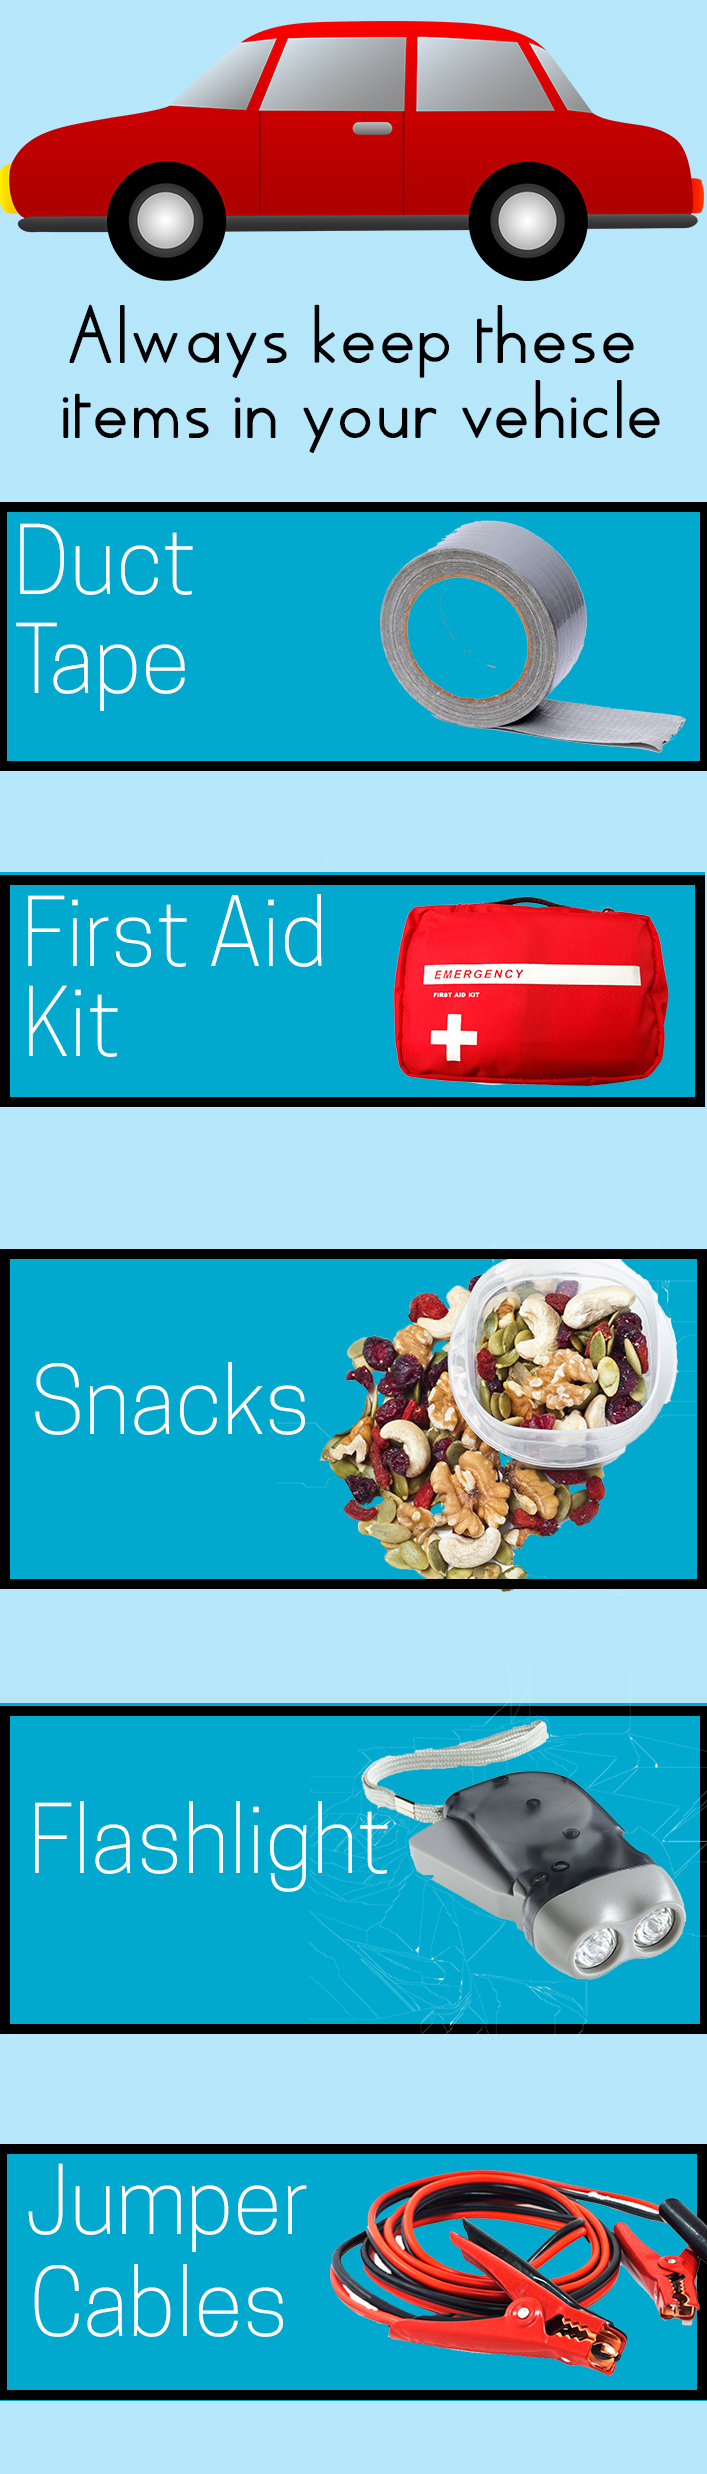 You never know when you might run into a roadside emergency. Here are some super simple supplies you can keep in your vehicle that will make sure you're always prepared.